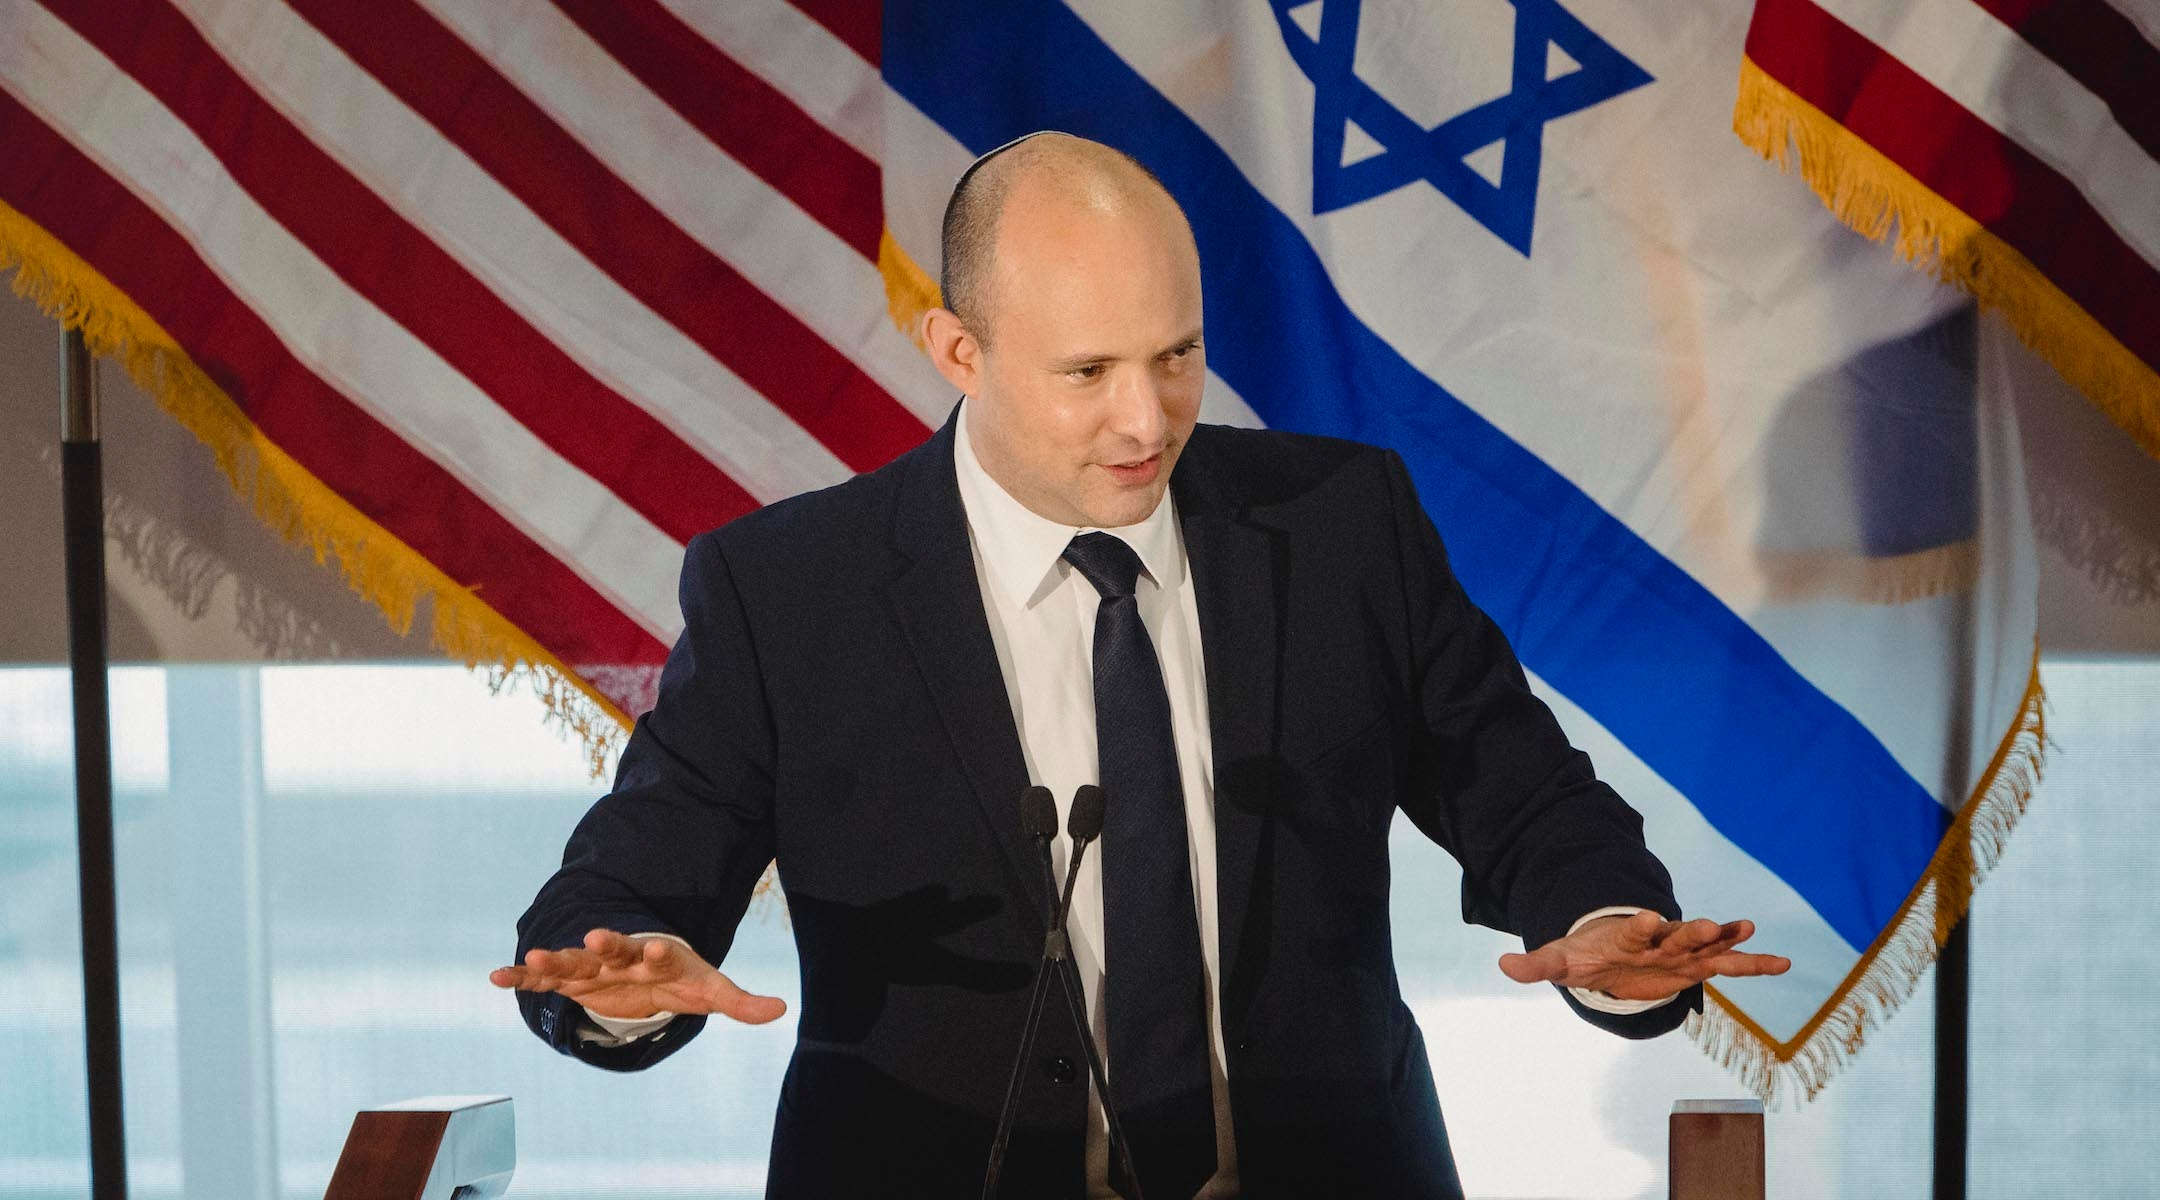 Israeli PM Naftali Bennett to American Jewish leaders: 'We have to redesign our relationship'